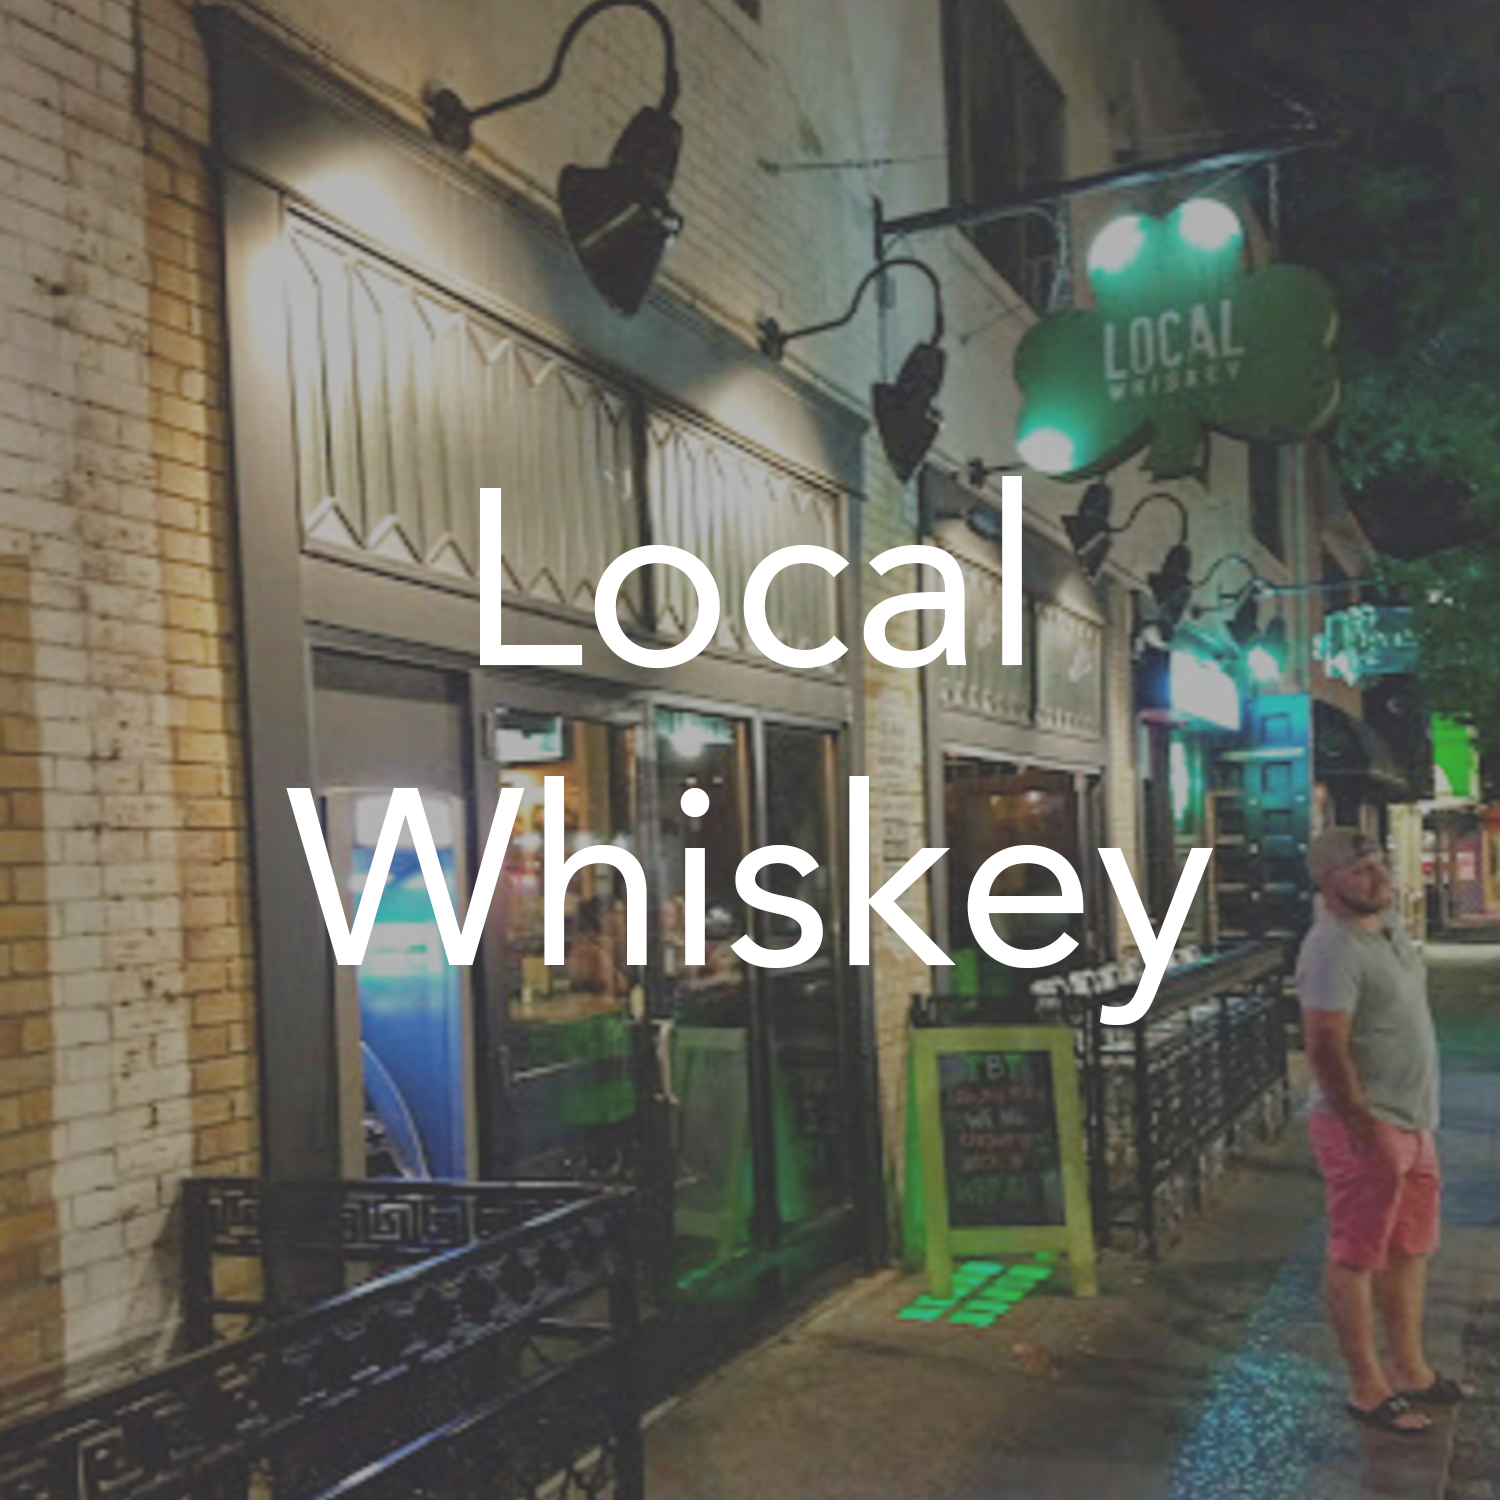 LocalWhiskeyWebsite.png